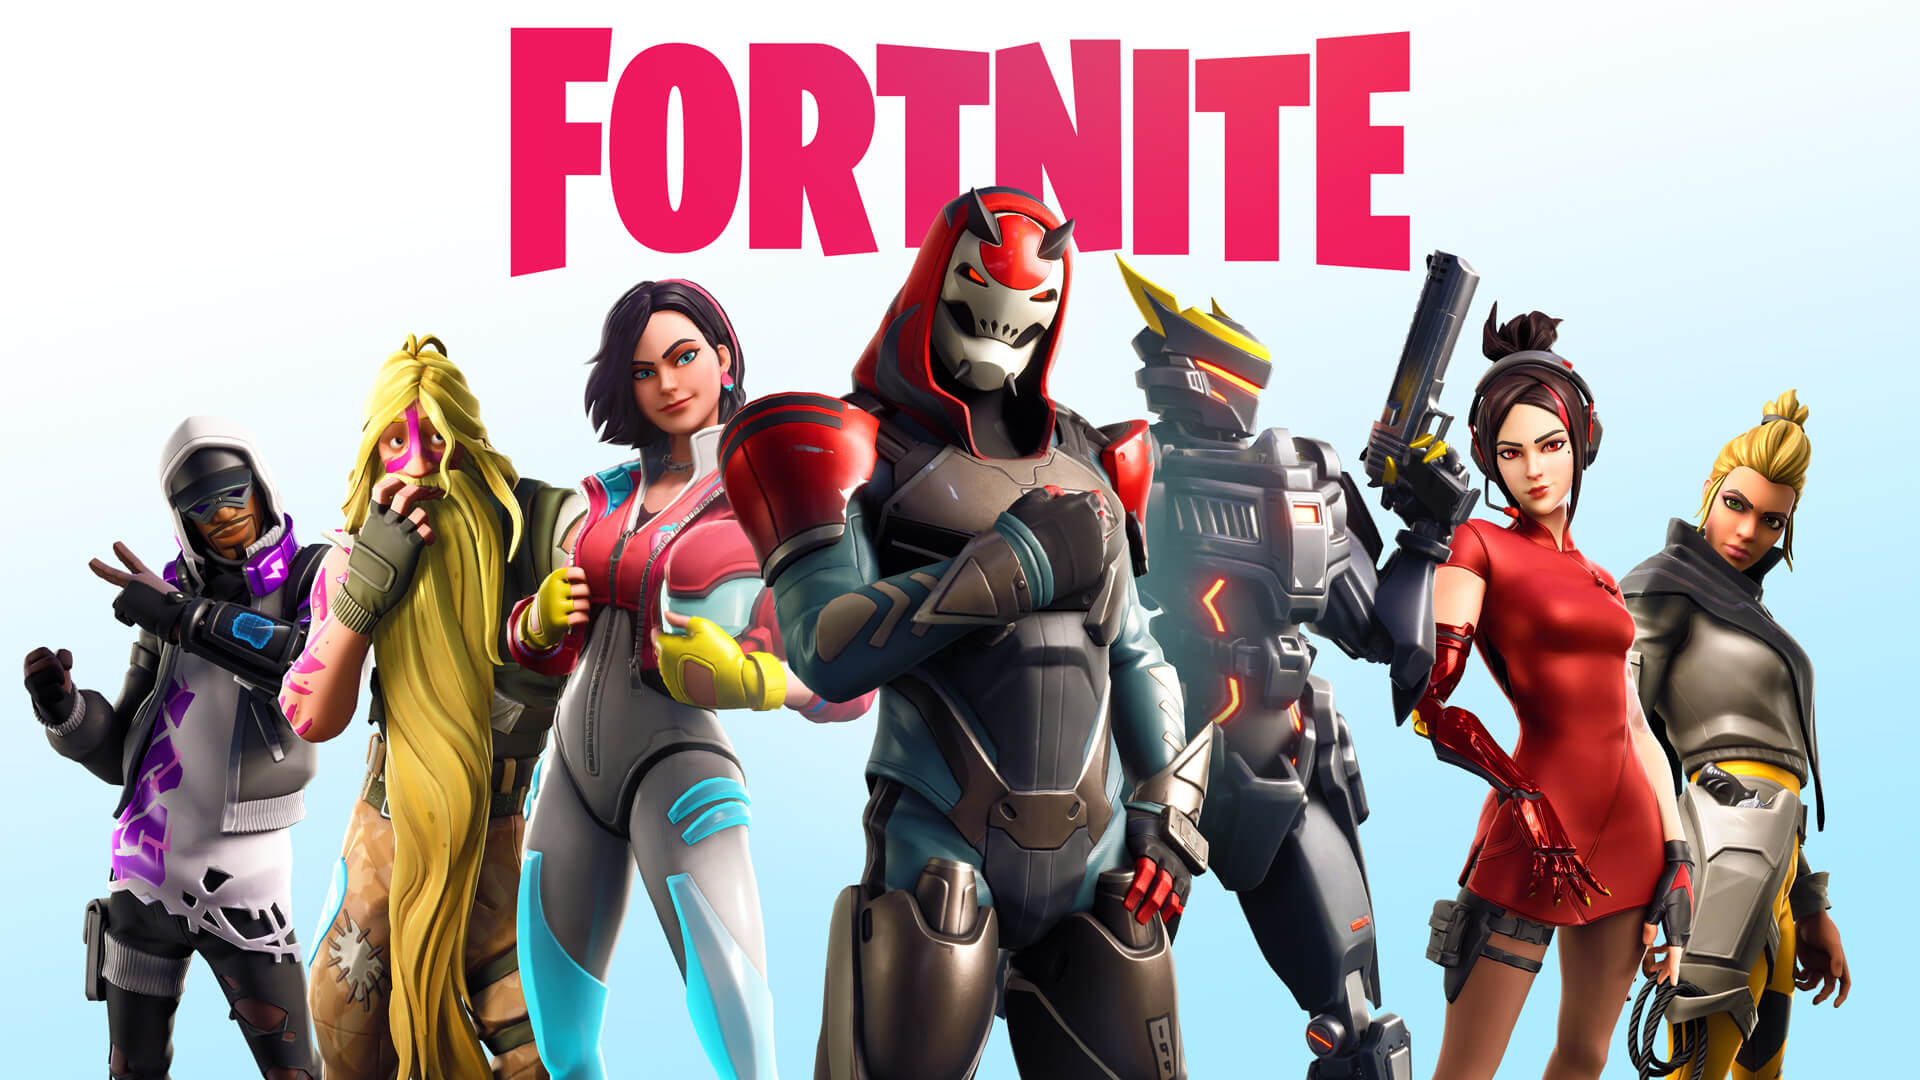 Fortnite offers a whole variety of in-game purchases. Credit: Epic Games